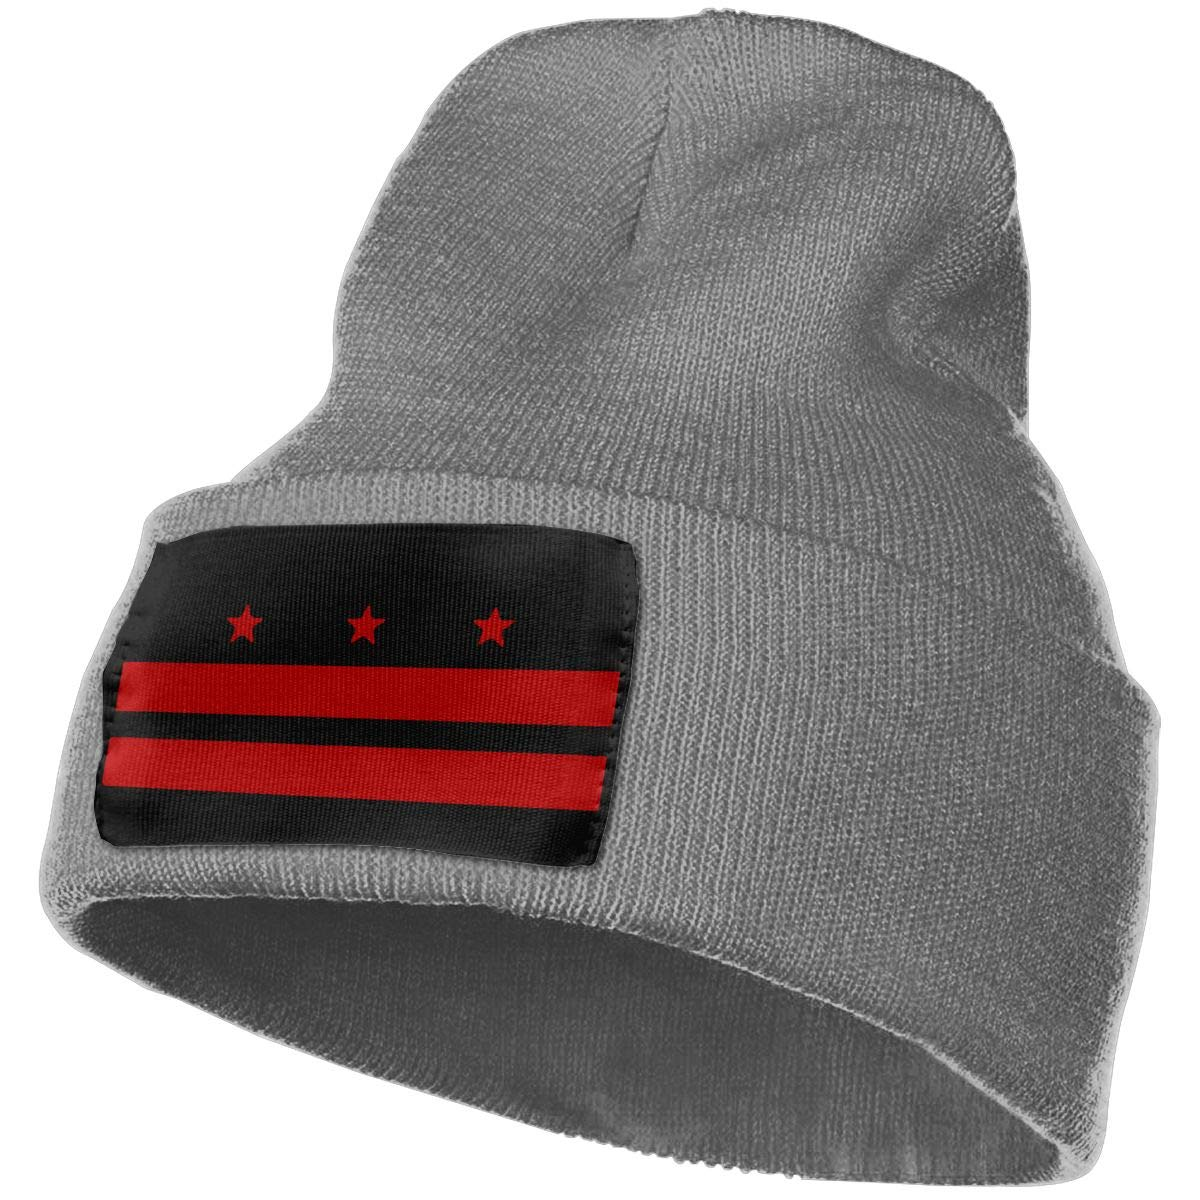 Flag of Washington D.C WHOO93@Y Mens and Womens 100/% Acrylic Knitted Hat Cap Fashion Beanie Hat